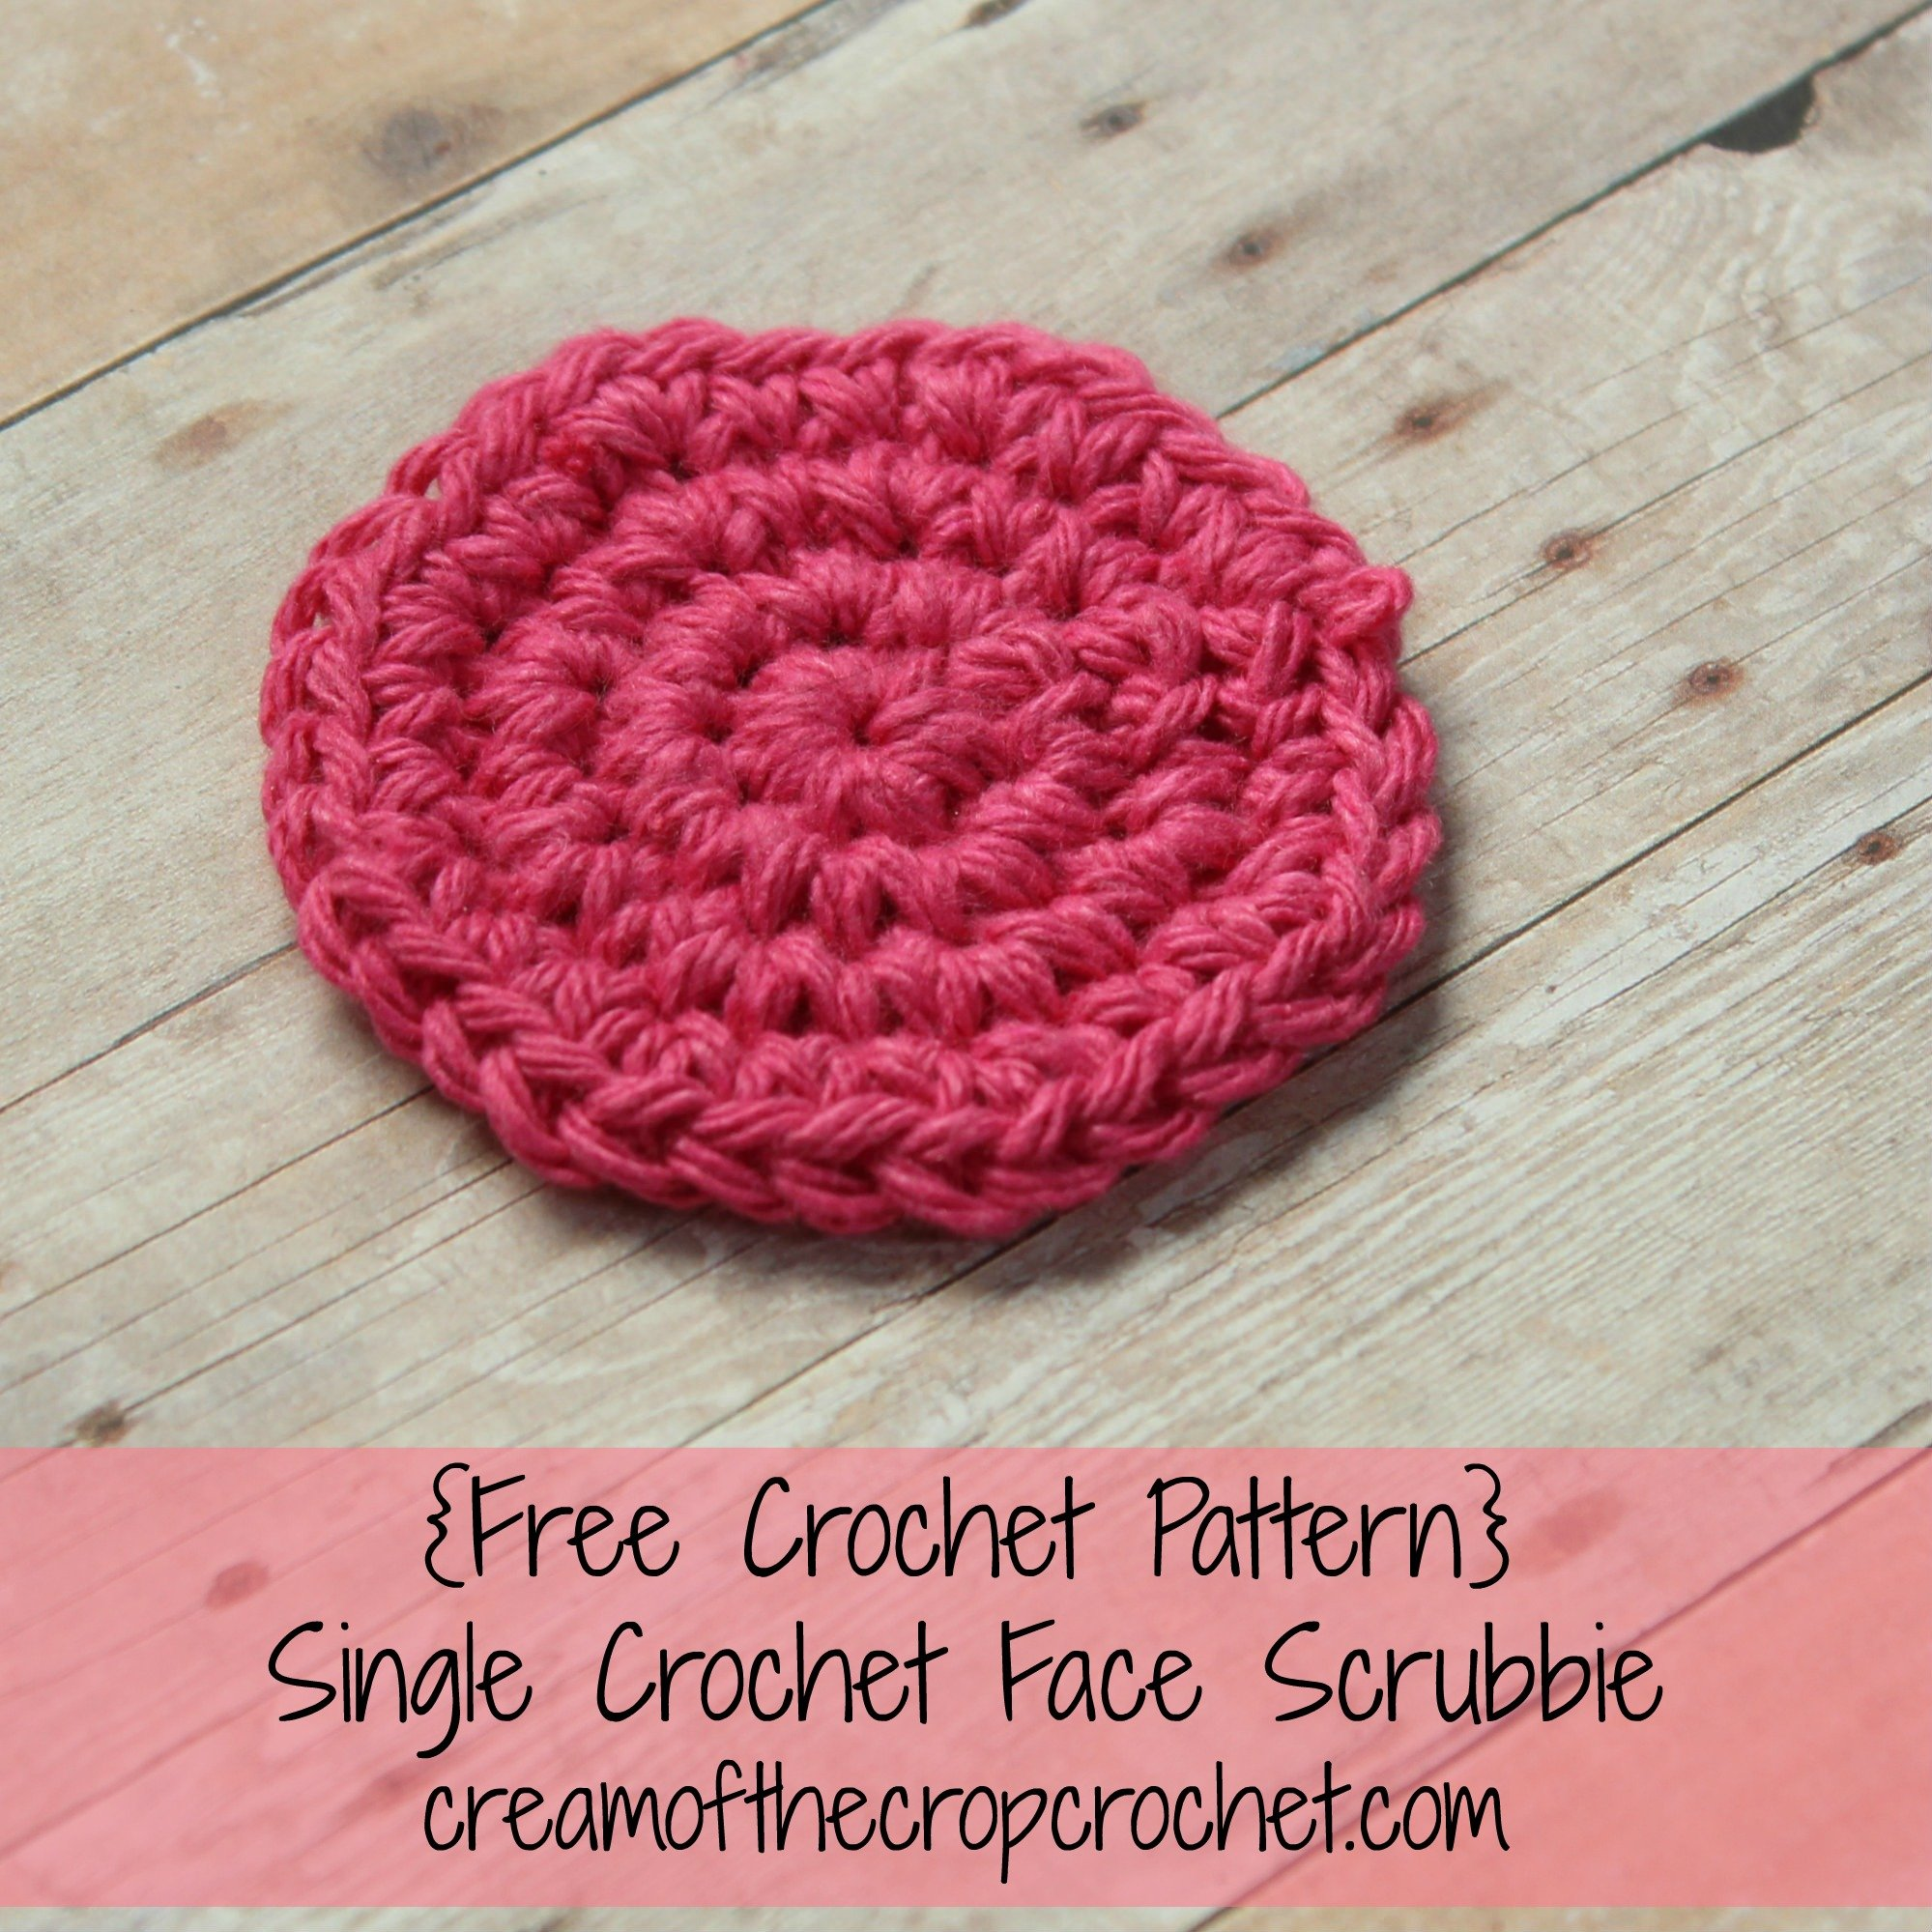 Face Scrubbies Archives - Crochet Pattern Bonanza